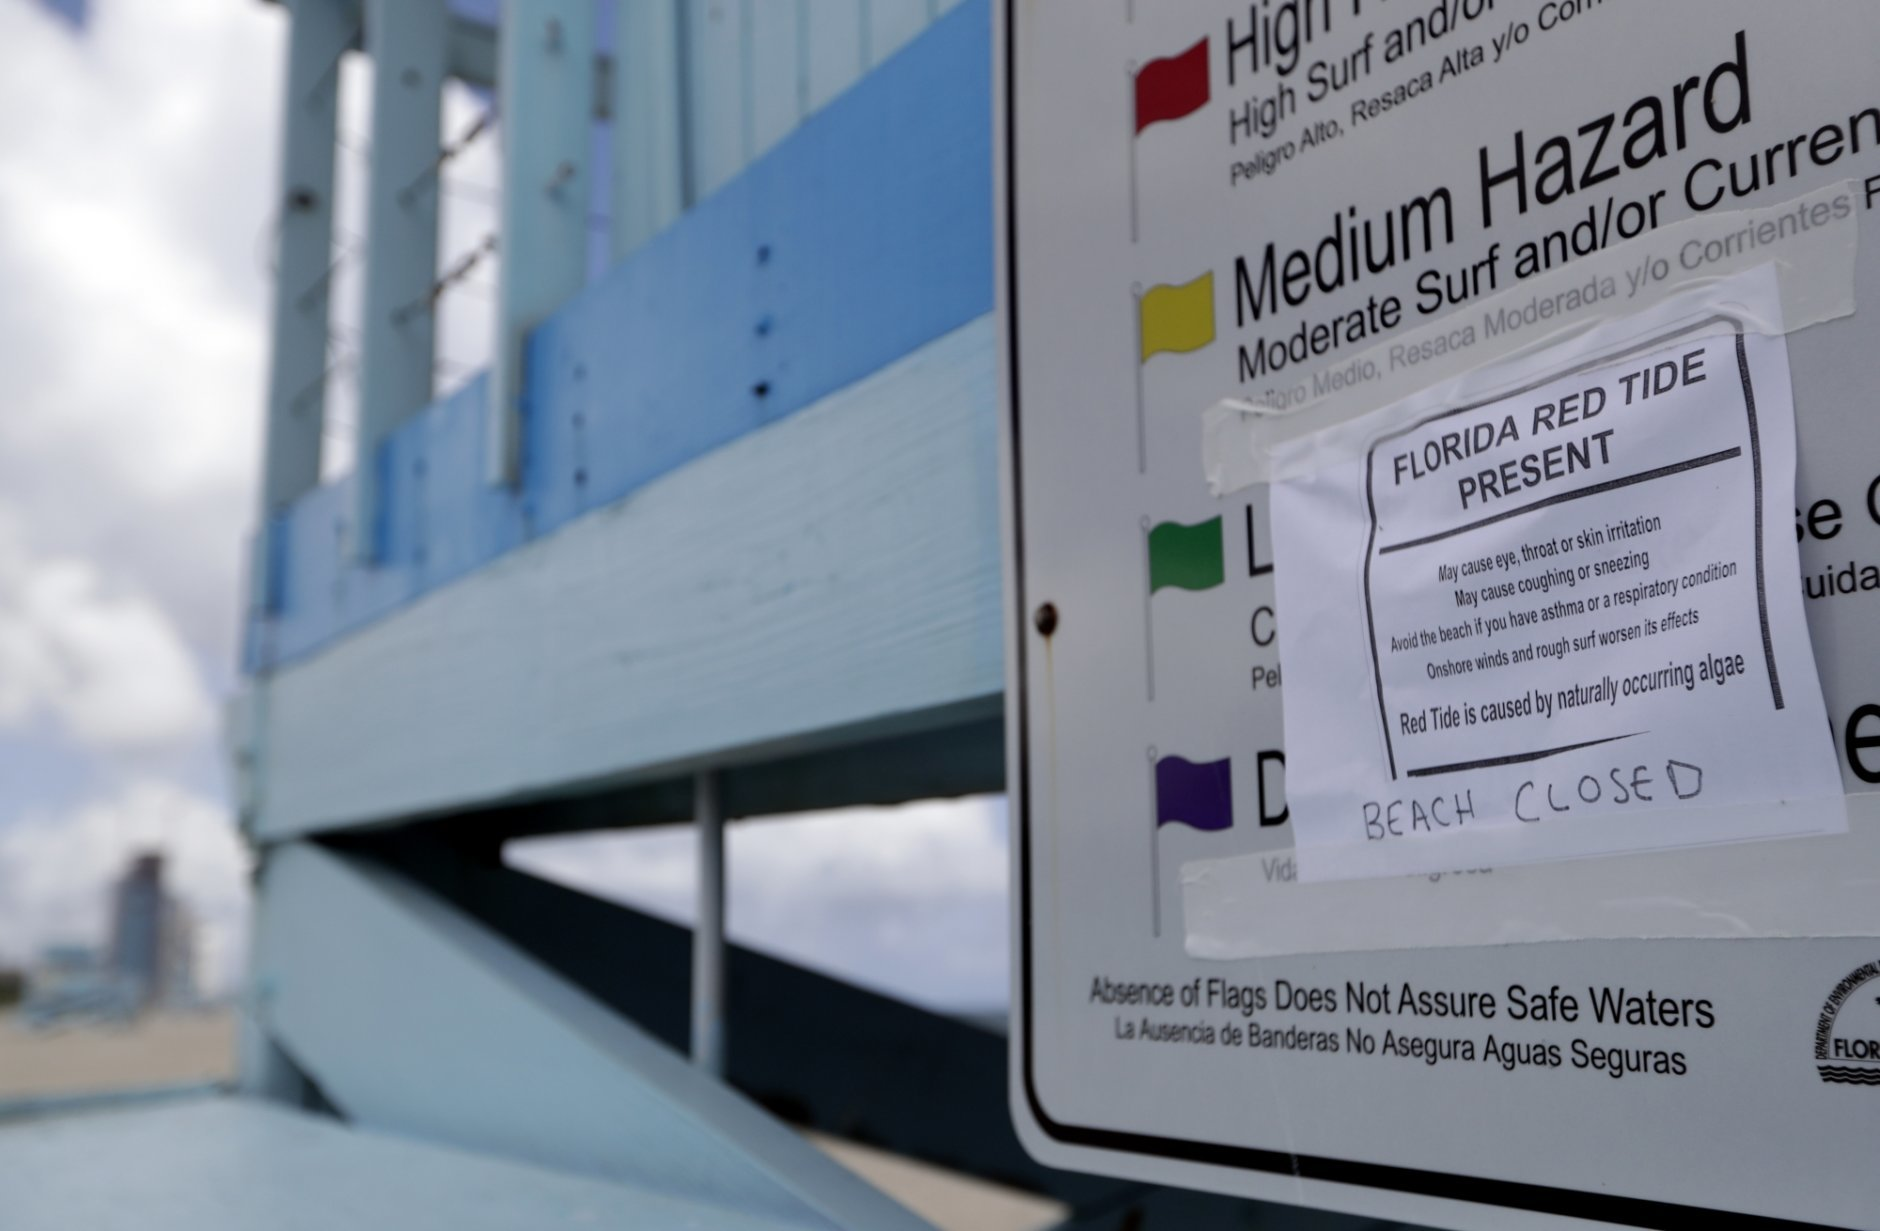 A sign posted on a lifeguard station warns of red tide at Haulover Beach Park, Thursday, Oct. 4, 2018, in Miami. Miami-Dade County closed beaches north of the Haulover inlet due to a rare outbreak of red tide along Florida's Atlantic Coast. Red tide is caused by algae and is common on Florida's Gulf Coast.  (AP Photo/Lynne Sladky)